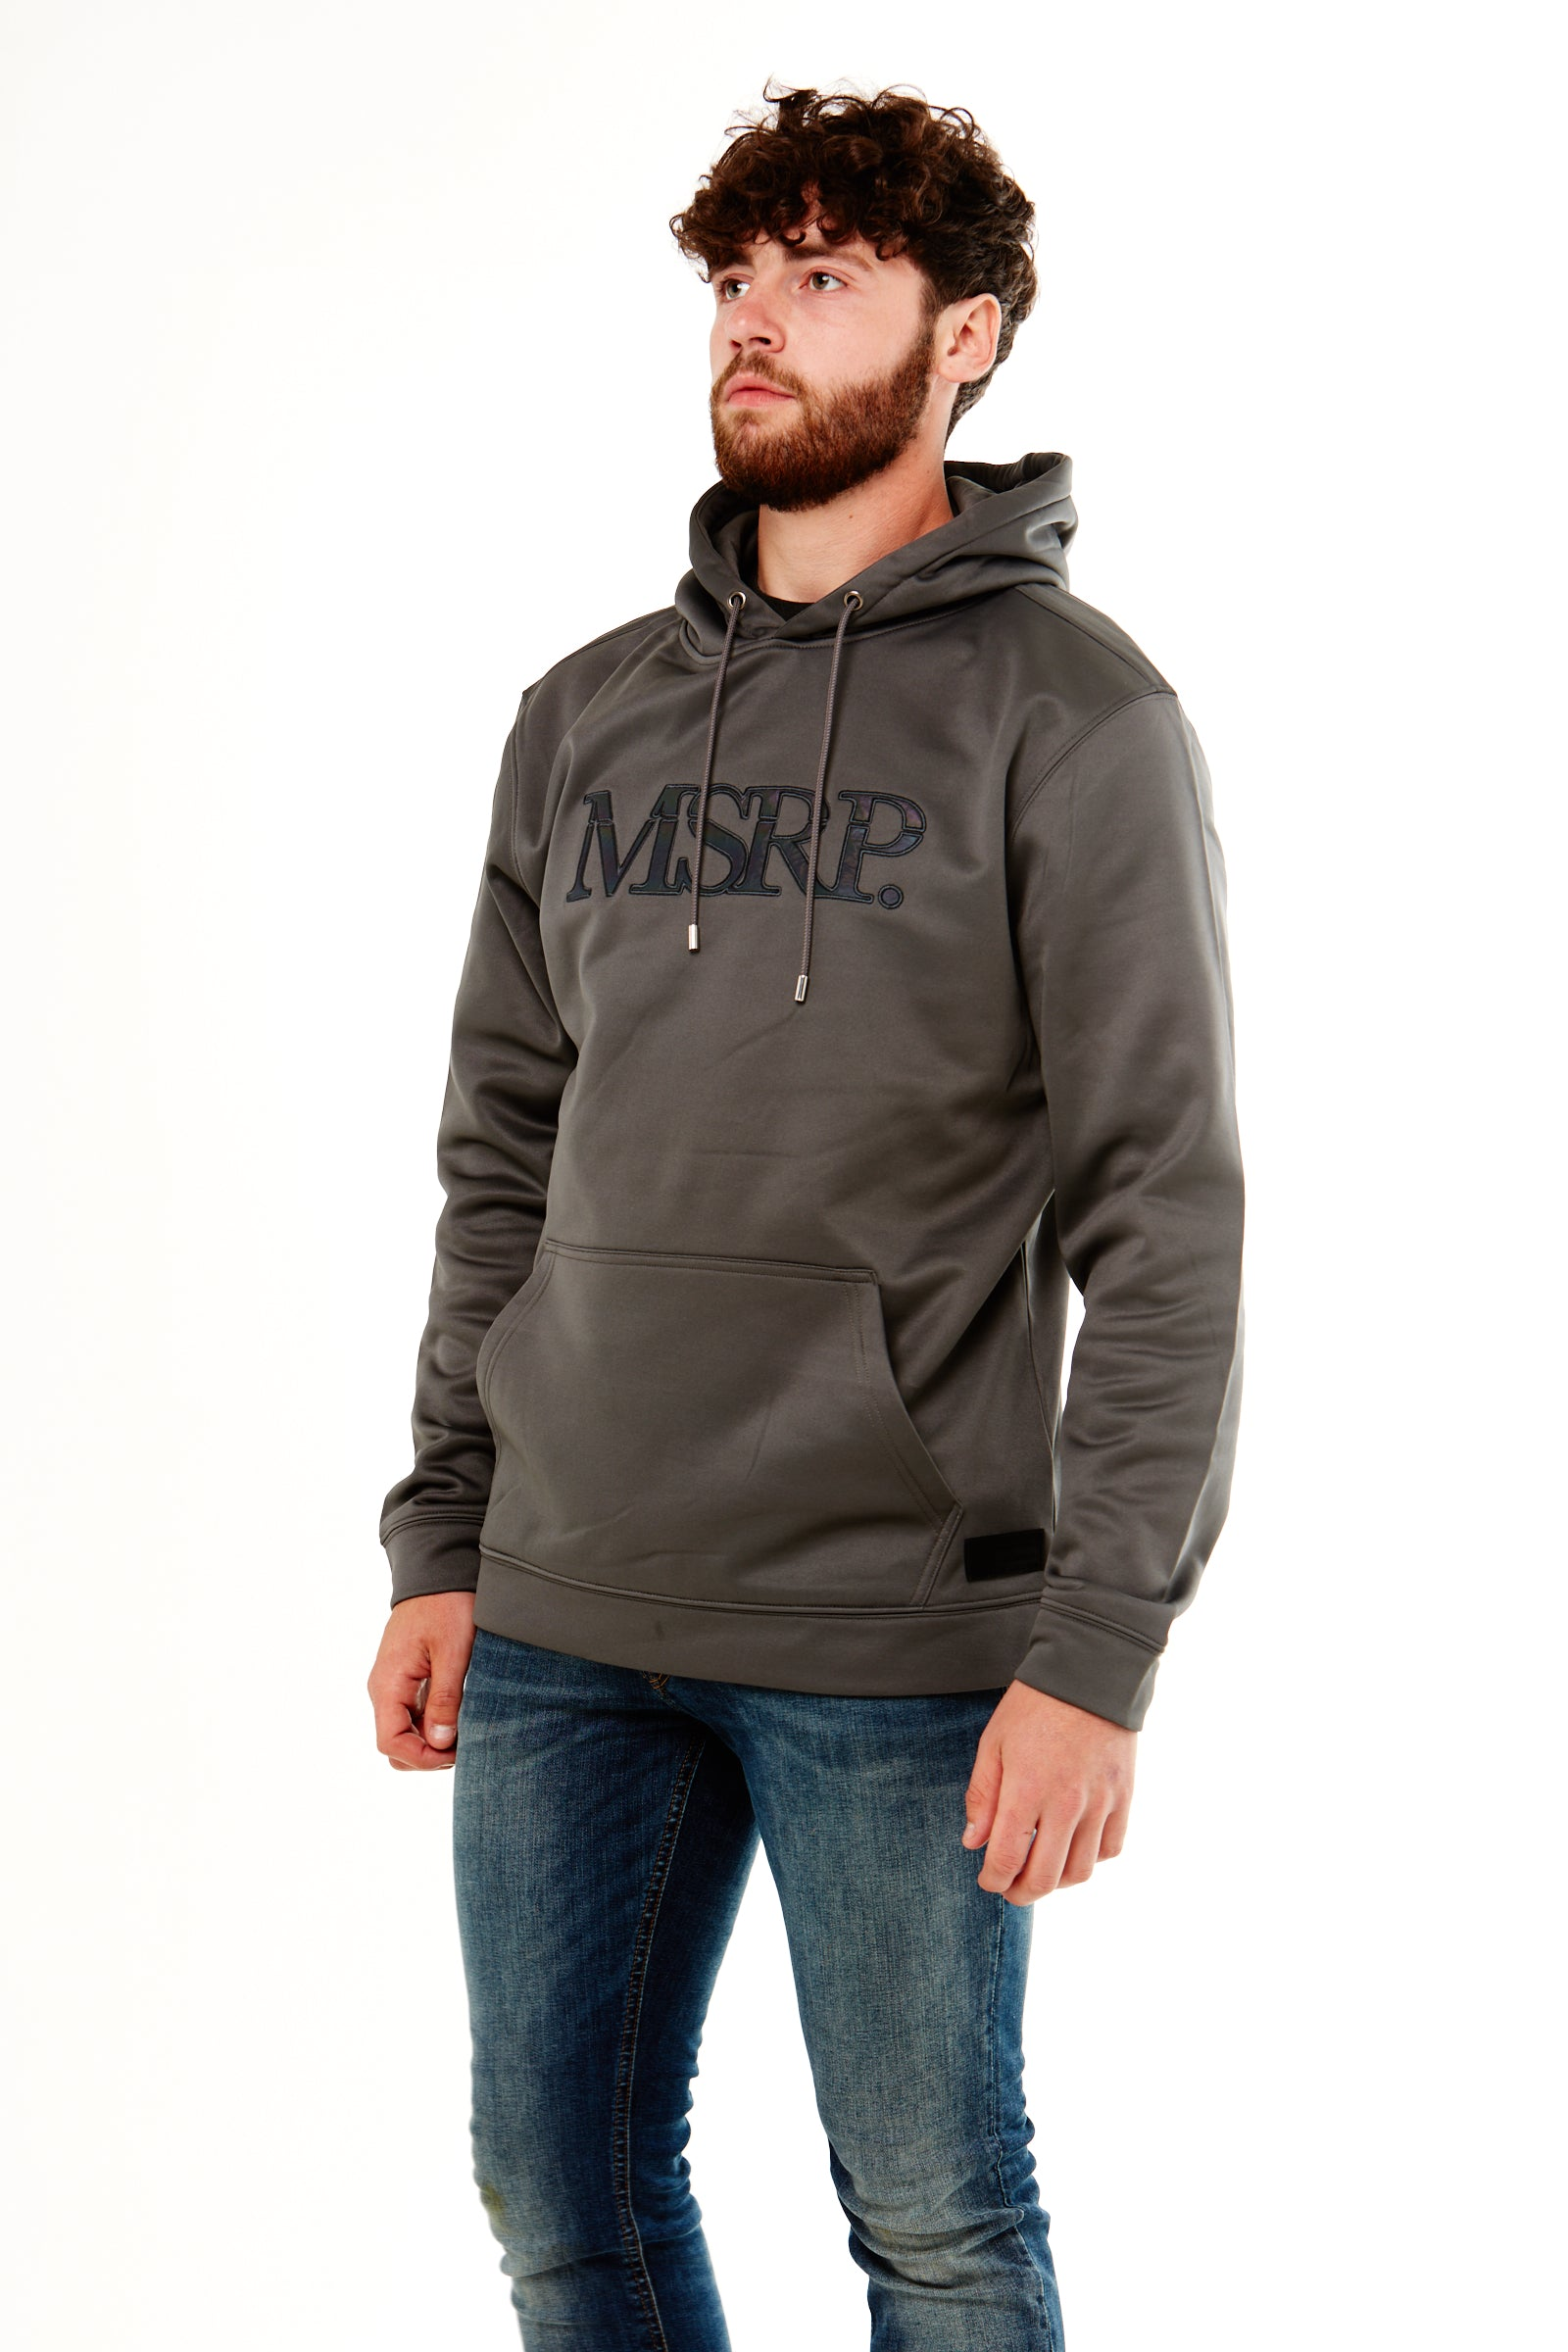 Varicoloured MSRP Hoodie (Slate Grey) (Soft Shell)